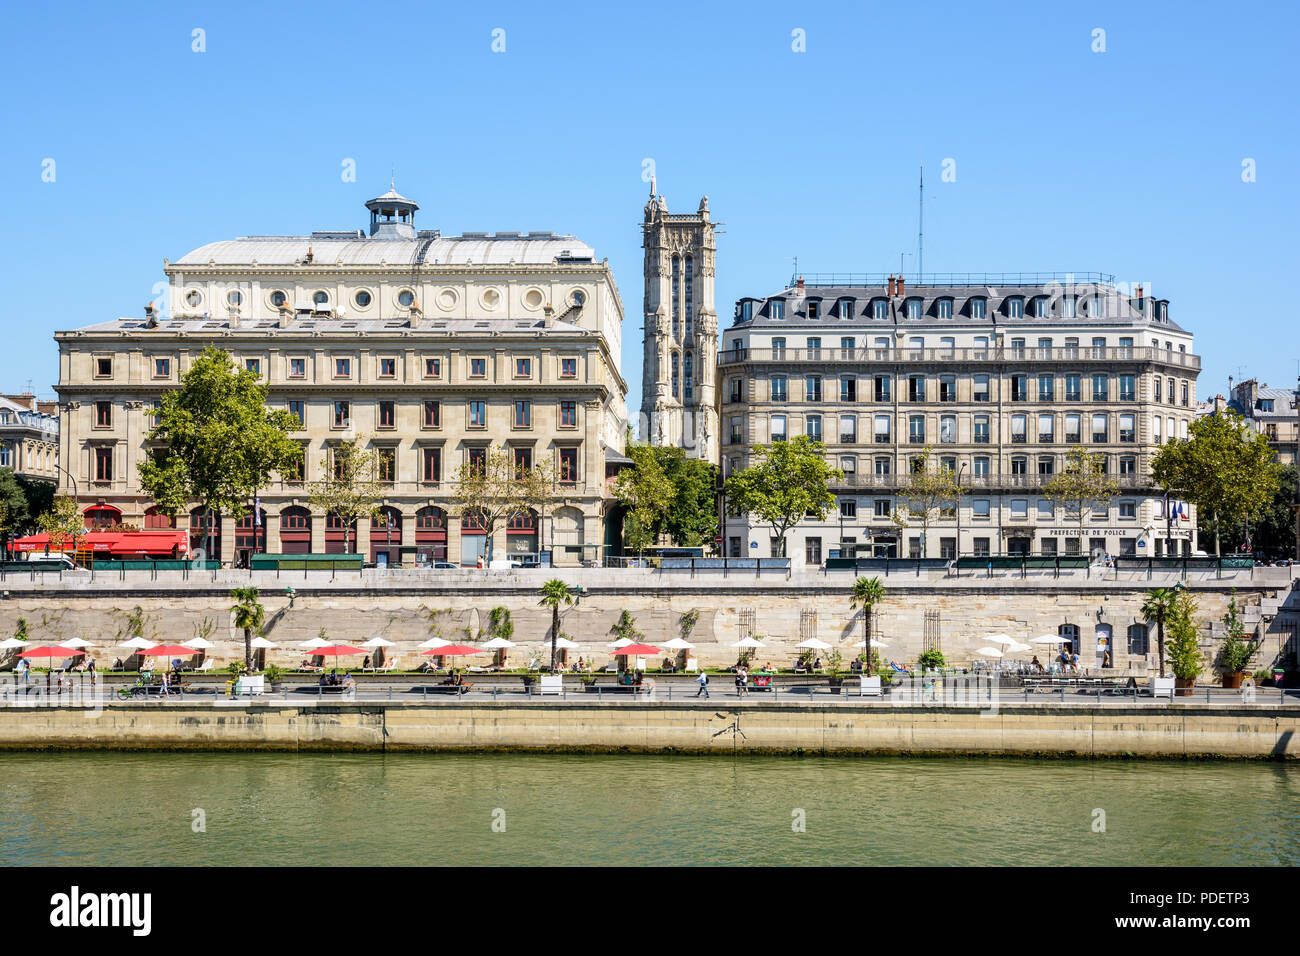 The banks of the Seine during Paris-Plages summer event with the Chatelet theater on the left and the Saint-Jacques tower in the background. - Stock Image